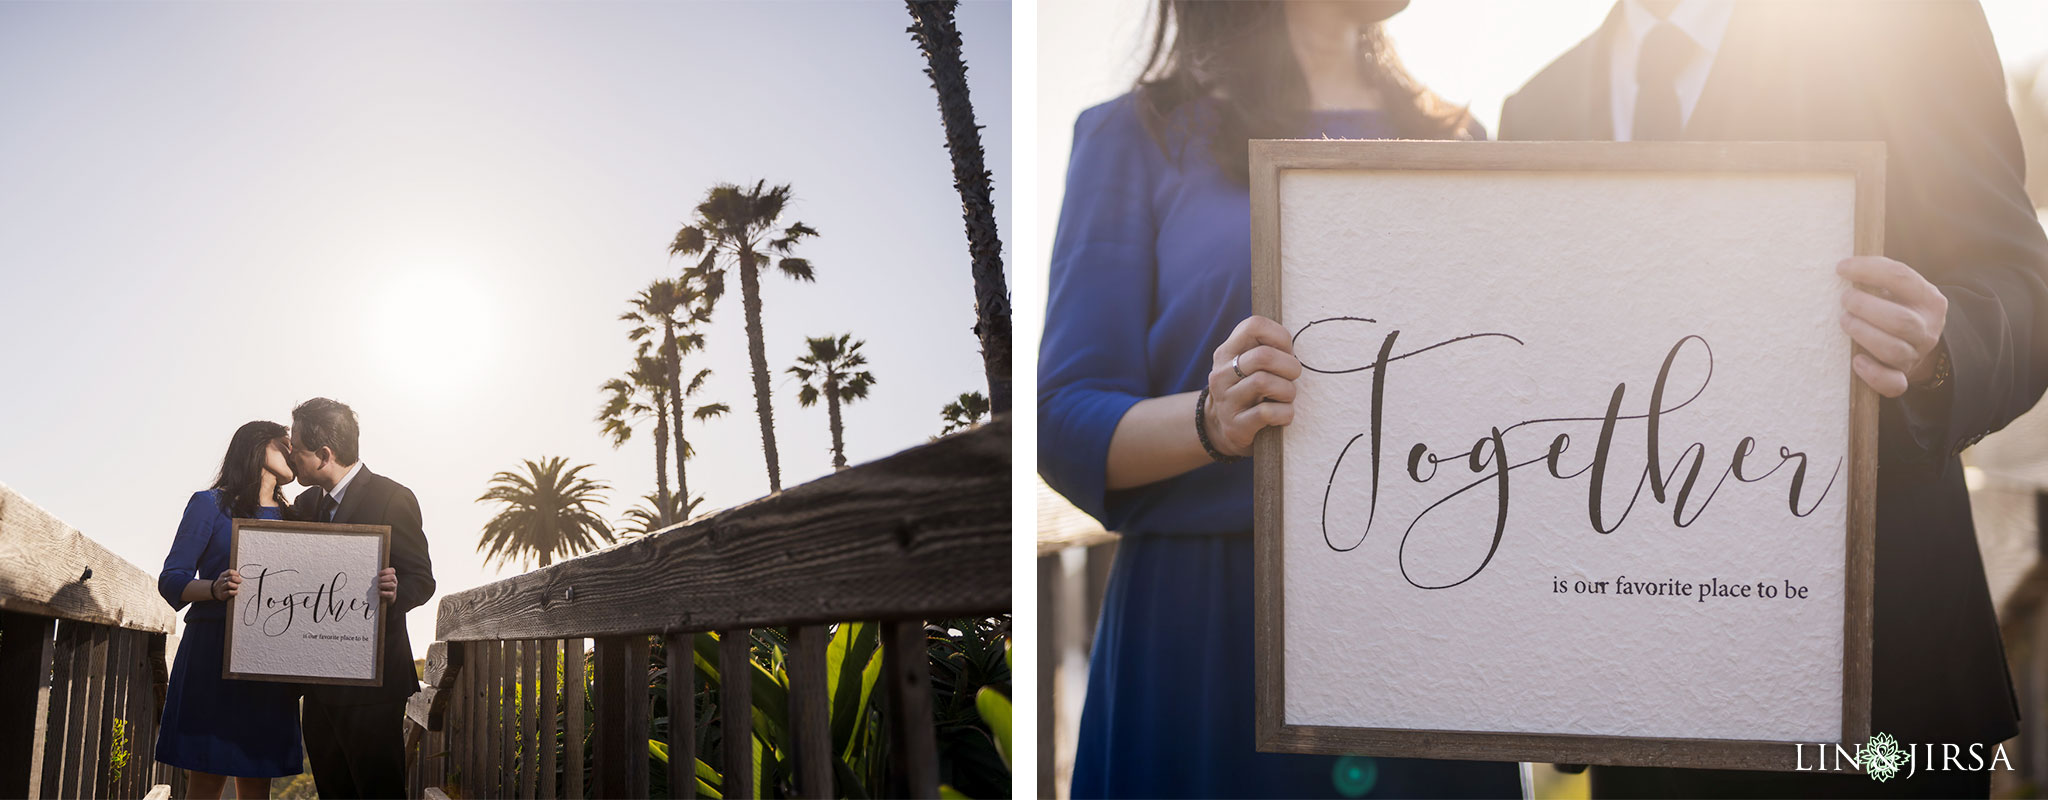 03 Treasure Island Park Laguna Beach Engagement Photography